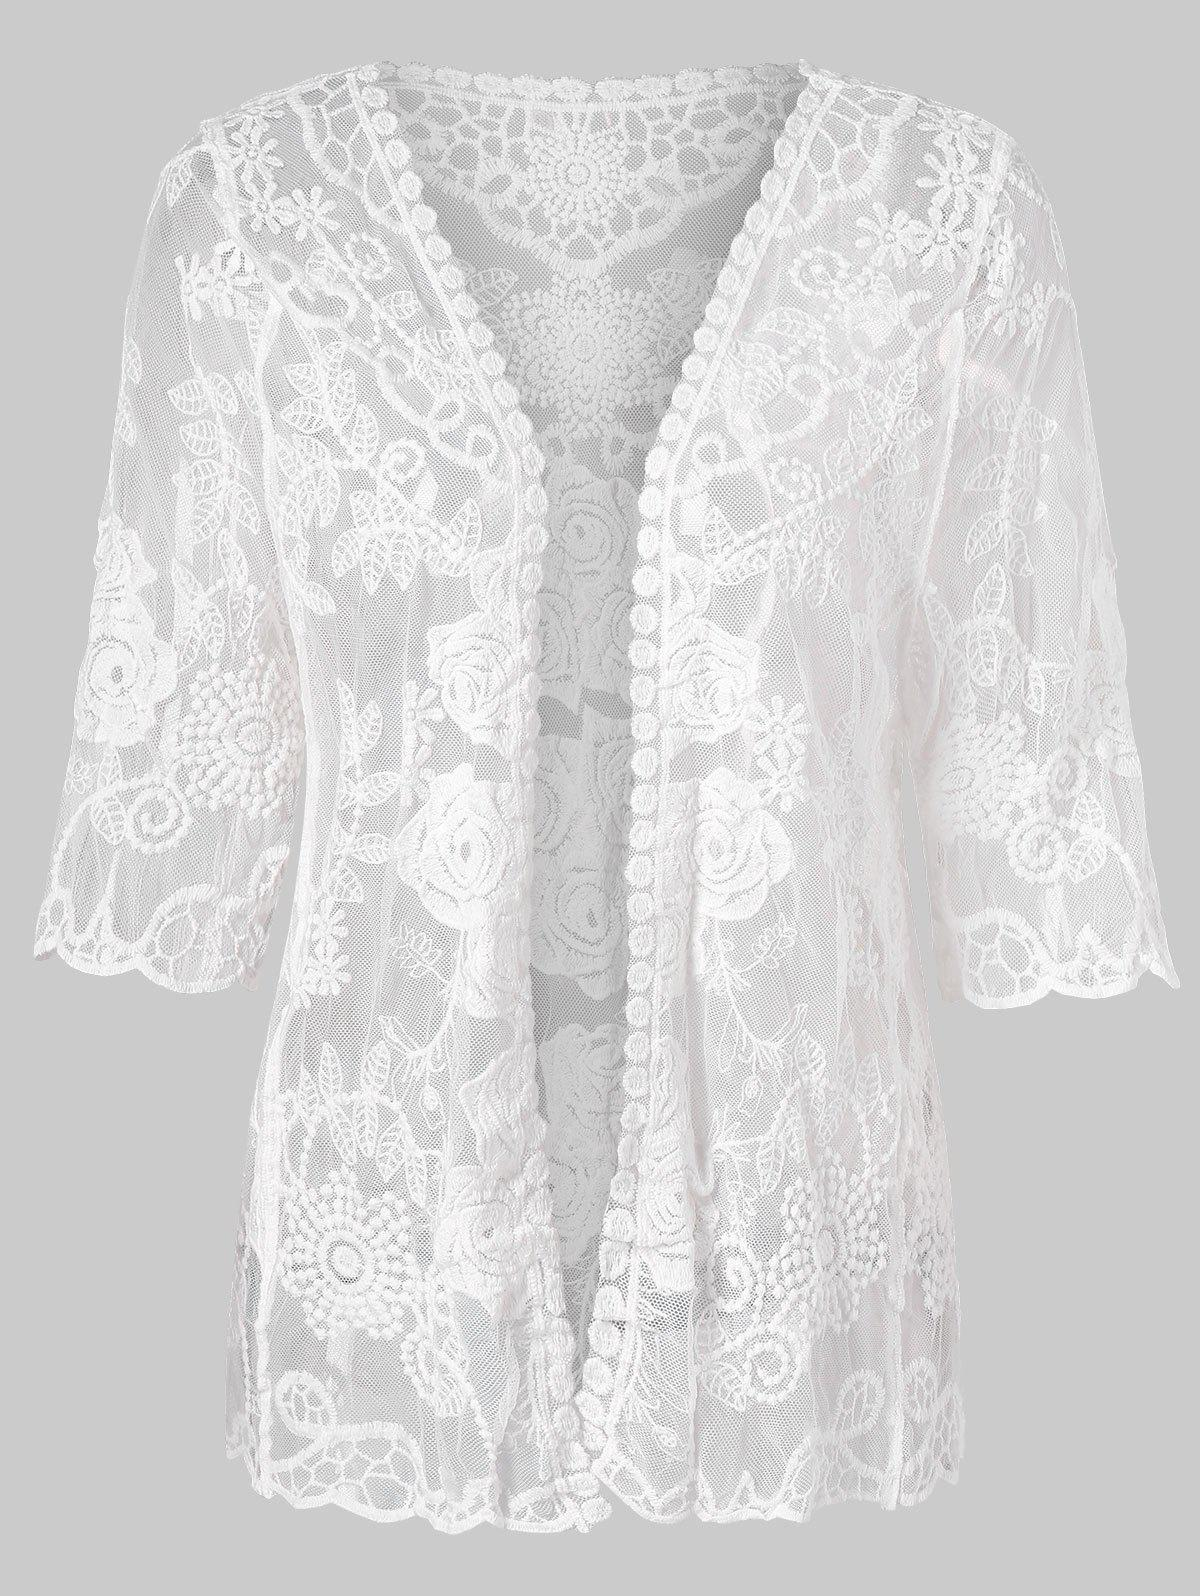 Floral Pattern Open Front Lace Cover Up floral lace dress cover up